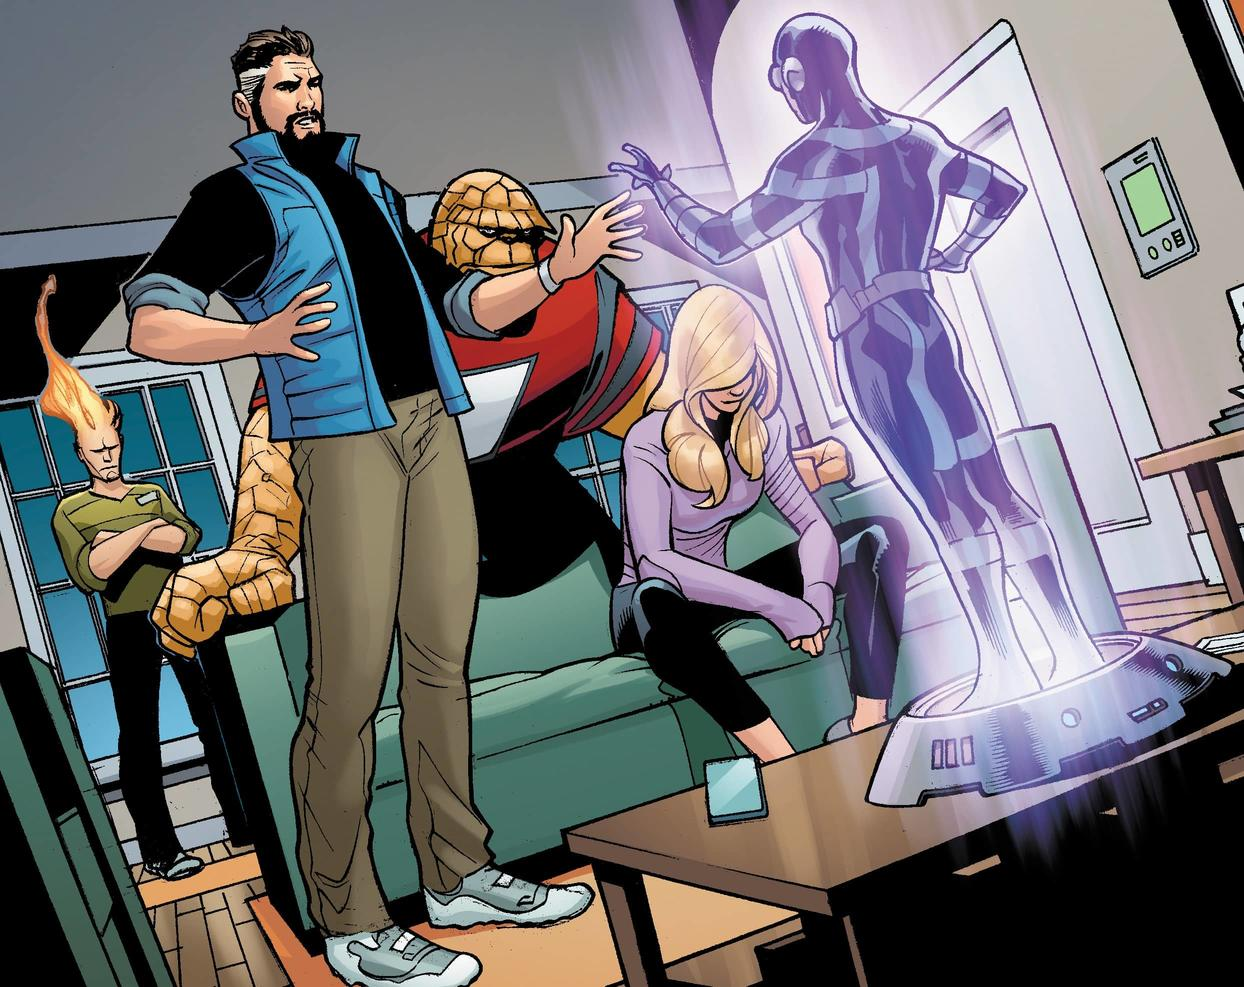 Interior art by Terry Dodson with inks by Rachel Dodson, Karl Story, and Ransom Getty; colors by Laura Martin